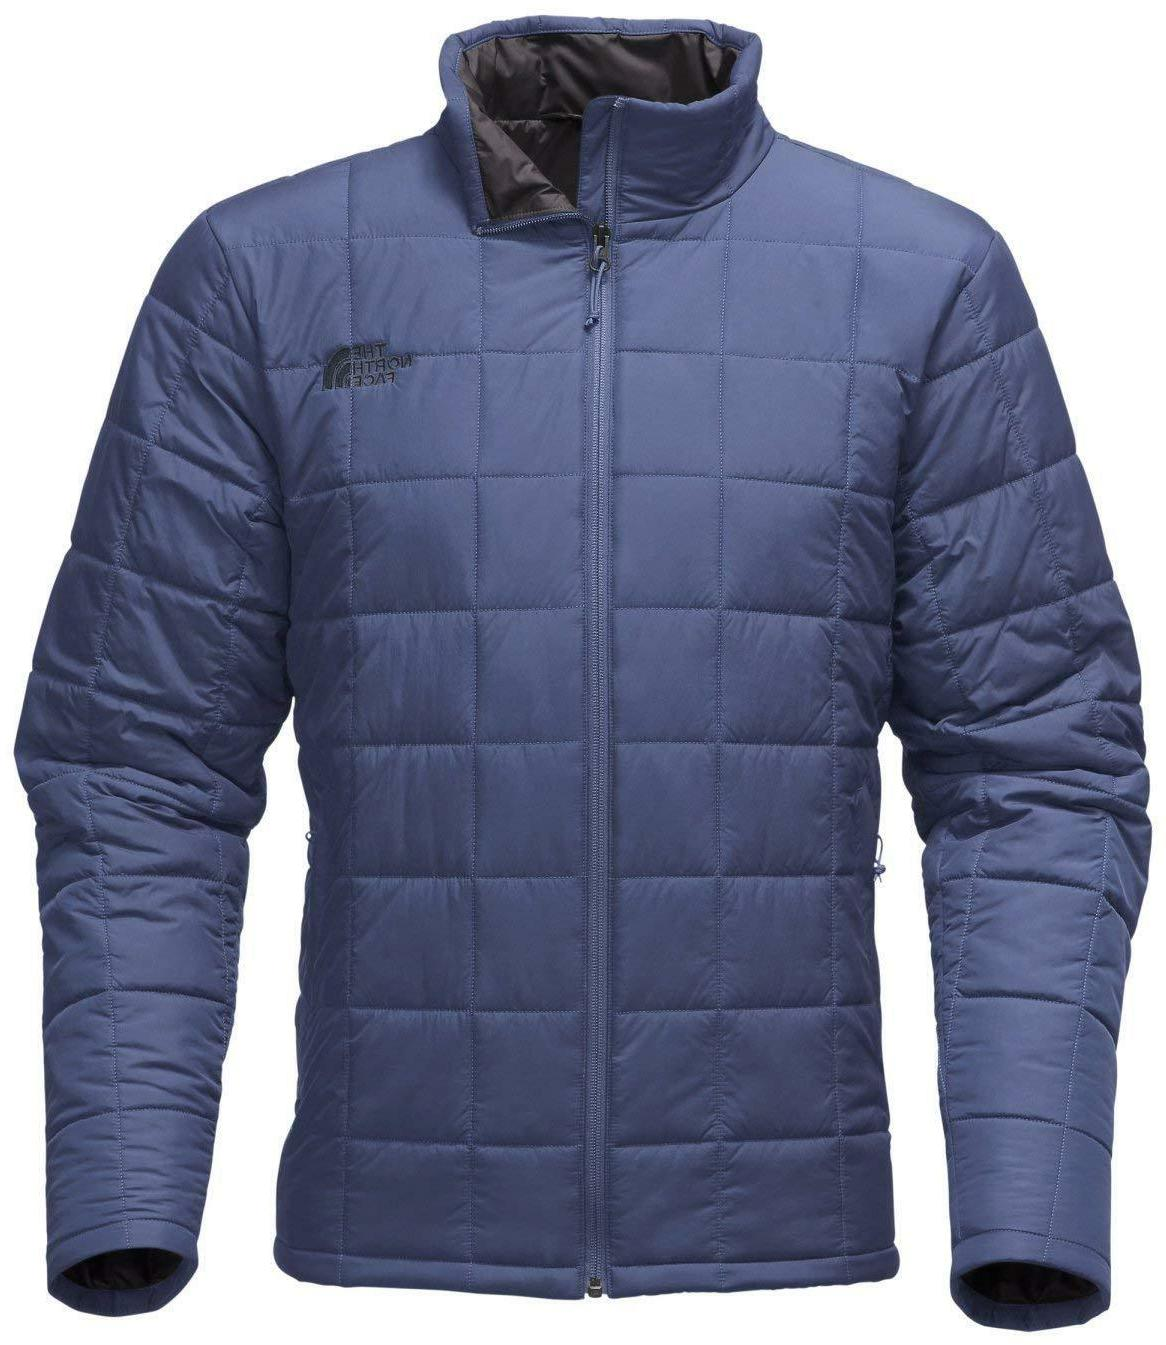 The Harway Jacket